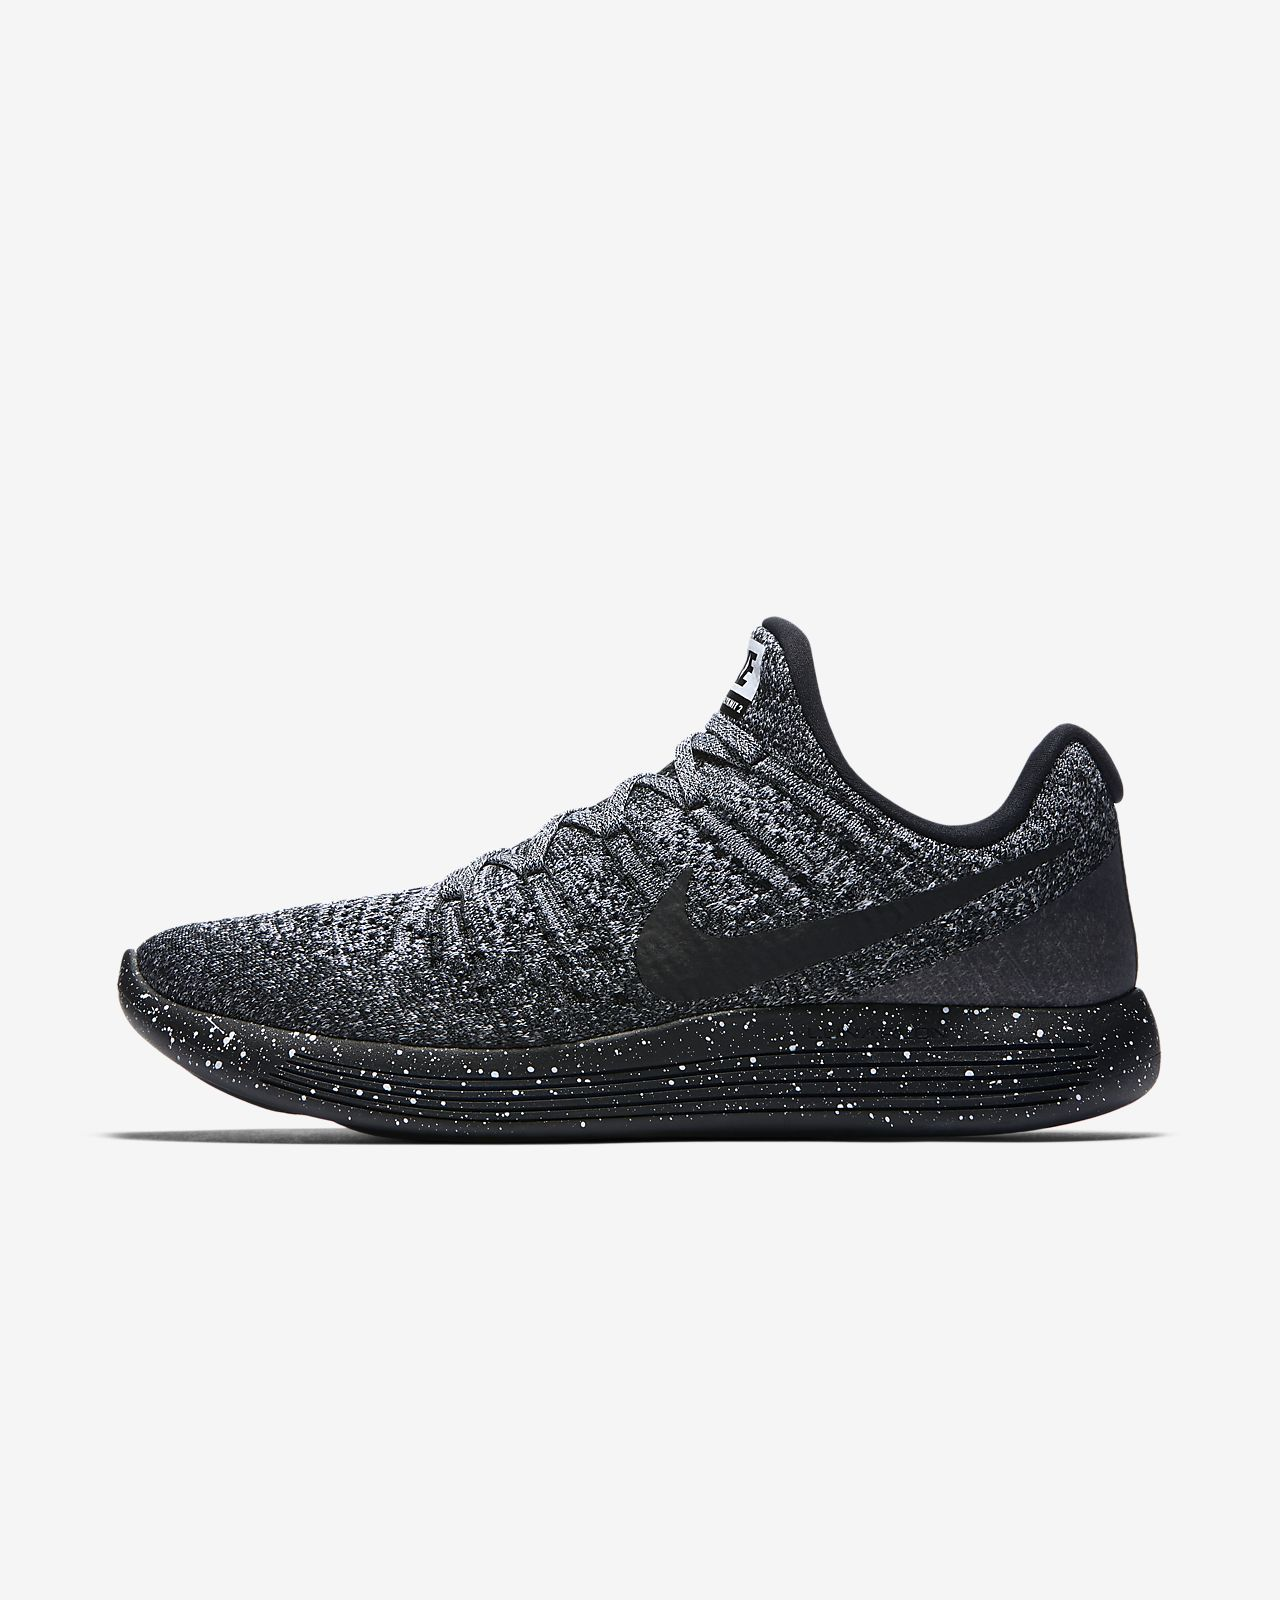 66ad8a241c0cb promo code nike lunarepic low flyknit champs 3450e a8352